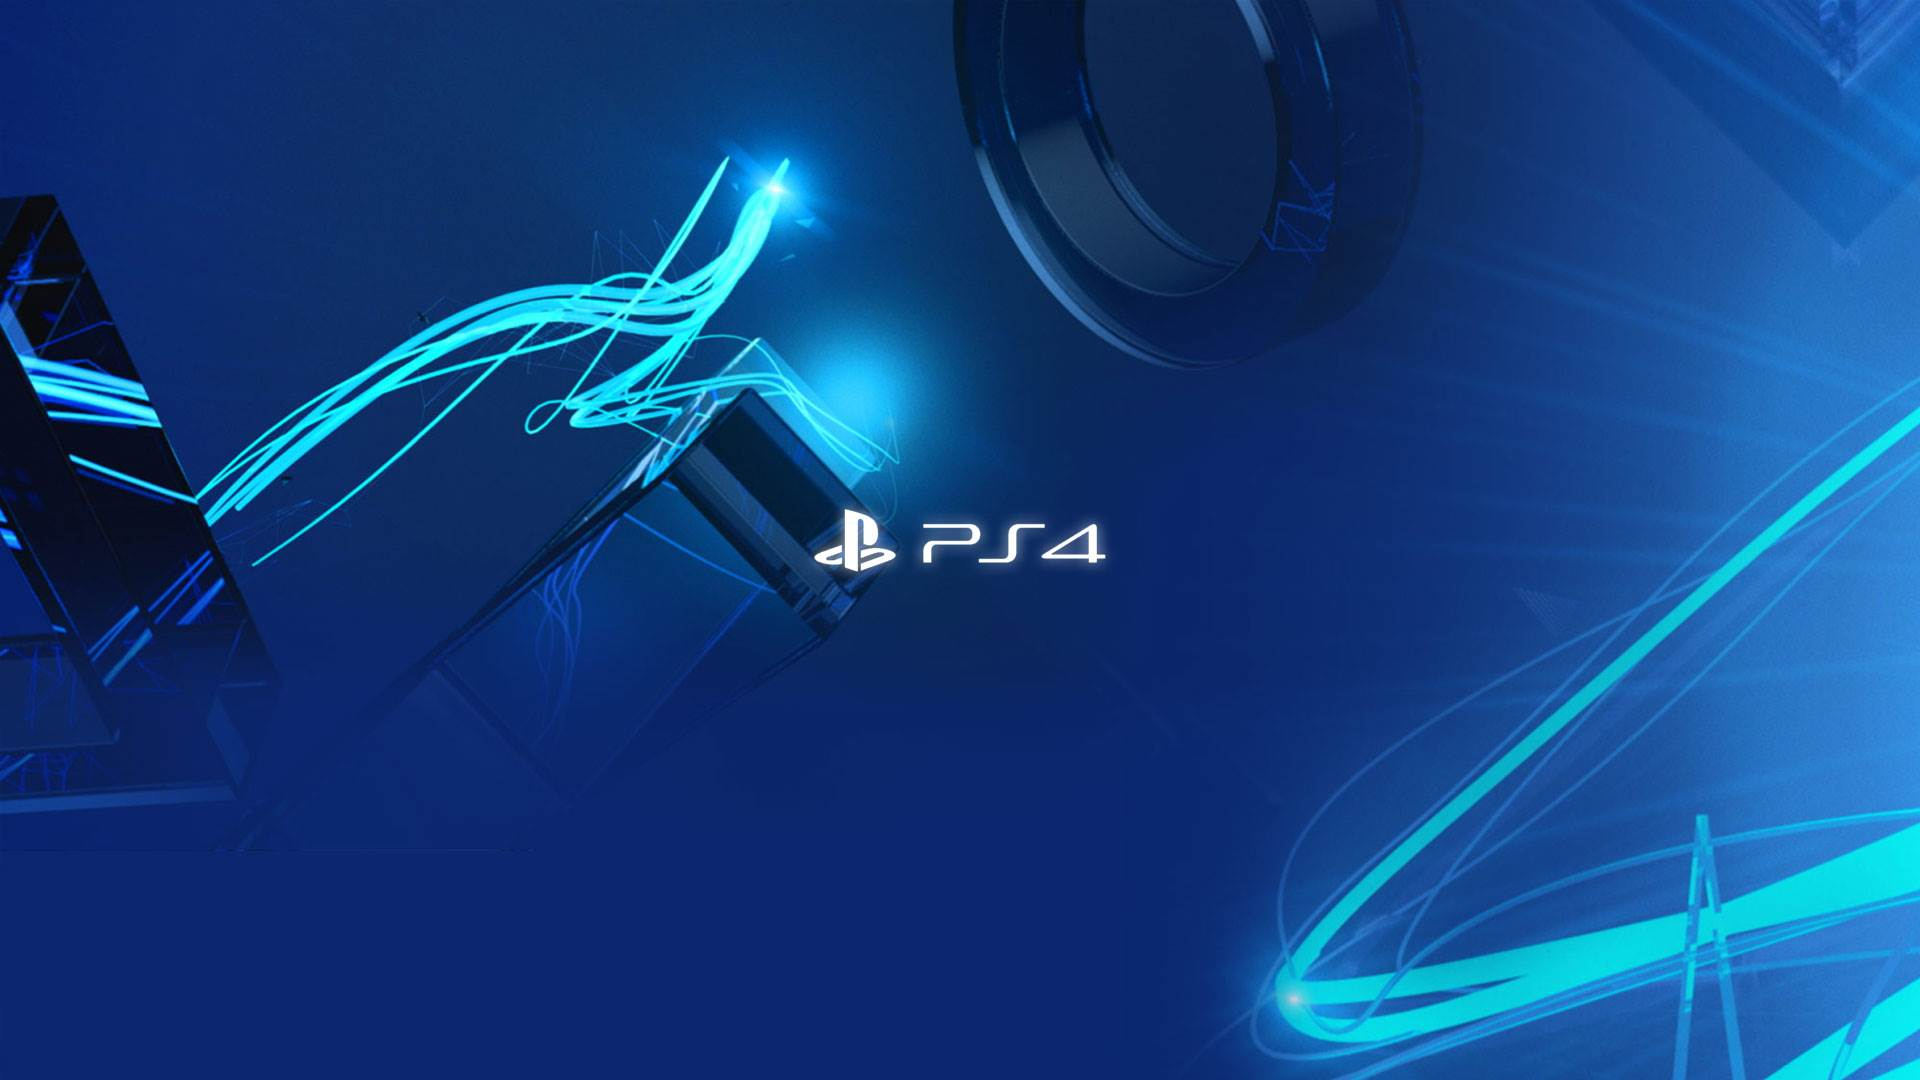 Ps4 Logo wallpaper | 1920x1080 | #67809